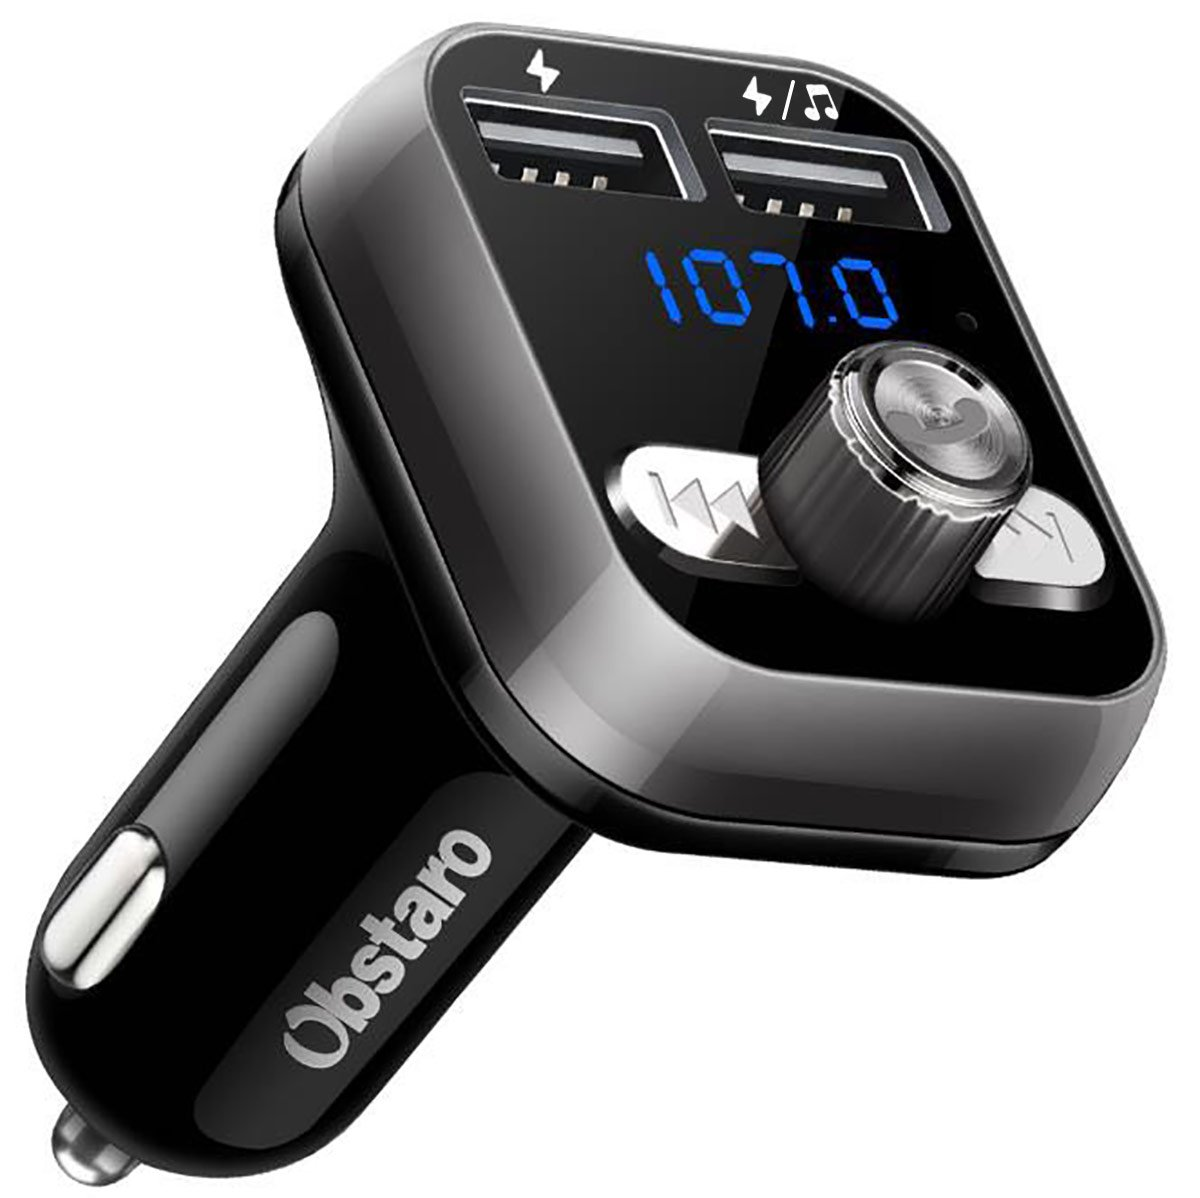 OBSTARO FM Transmitter, Bluetooth Fm Transmitter for car, Wireless in-car Bluetooth Receiver MP3 Player Stereo Radio Adapter car kit with Dual USB Ports,Hands Free for Iphone, Ipad,Smartphones